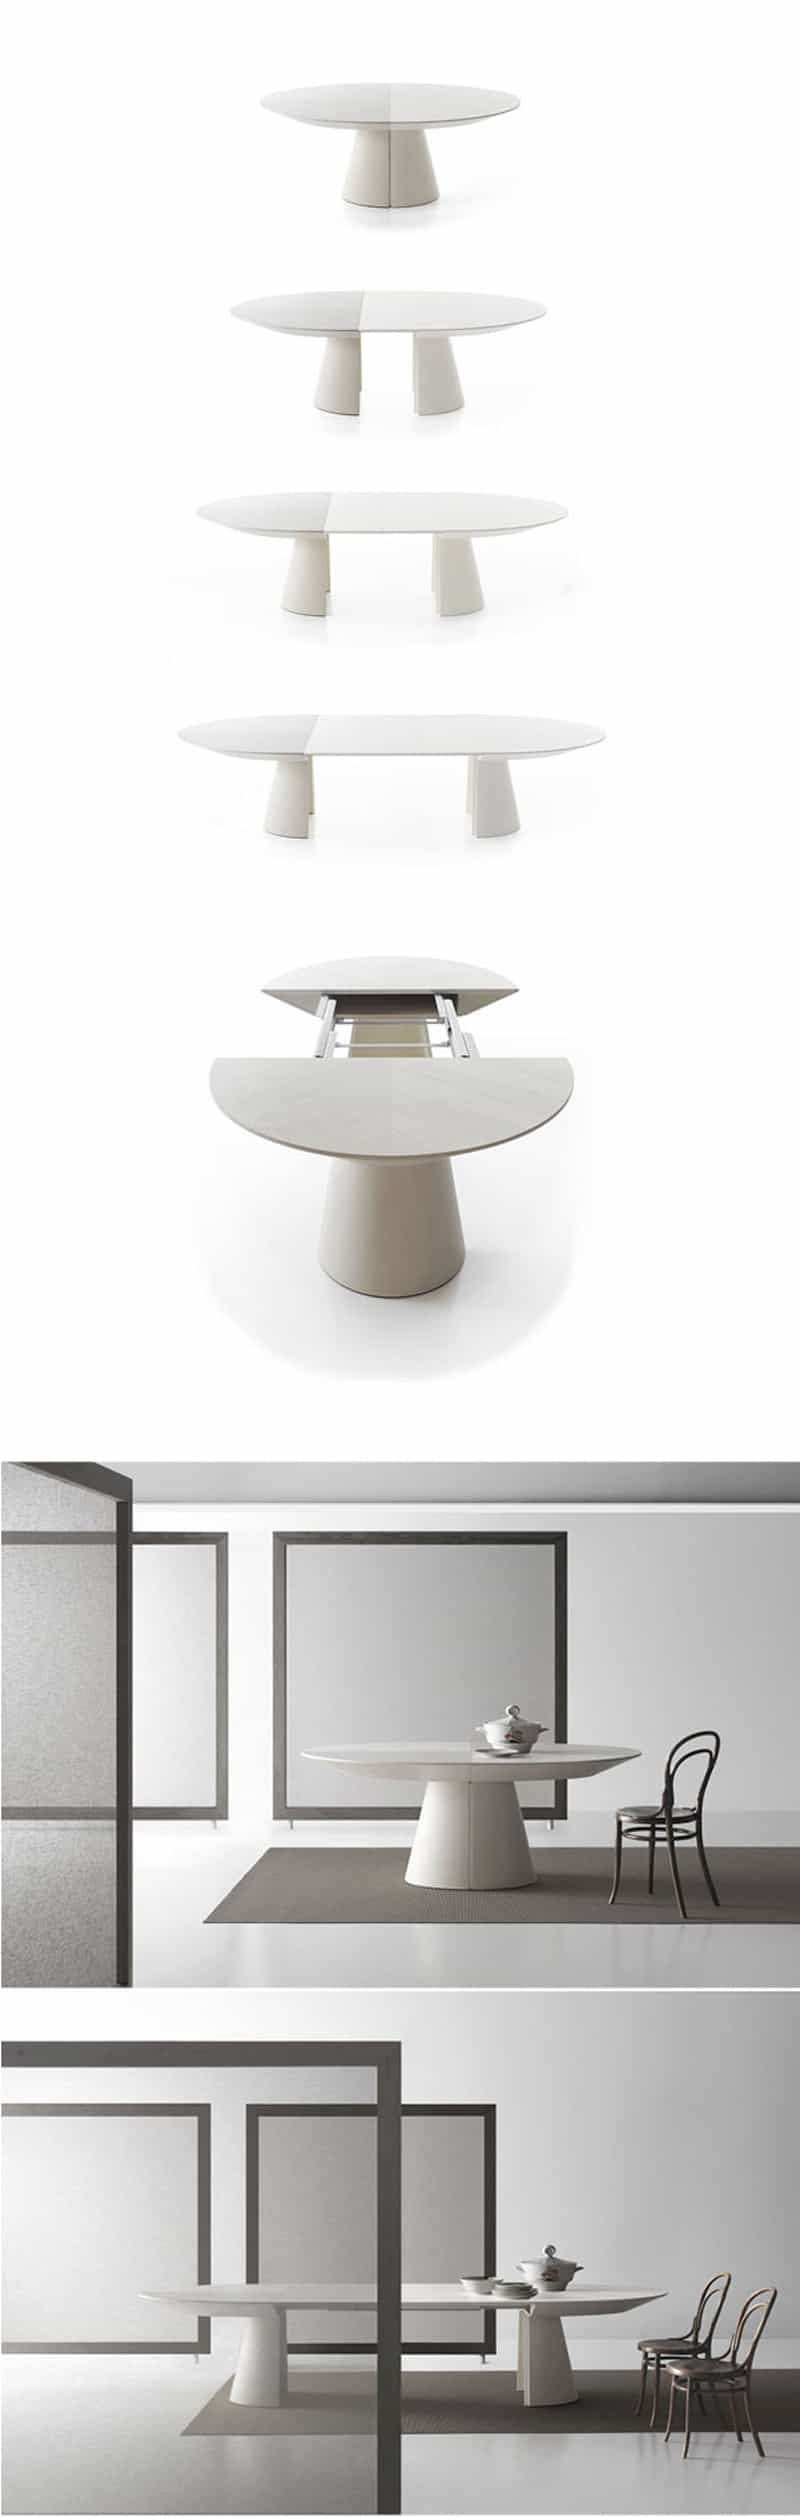 extendable-dining-tables_ DESIGNRULZ (10)